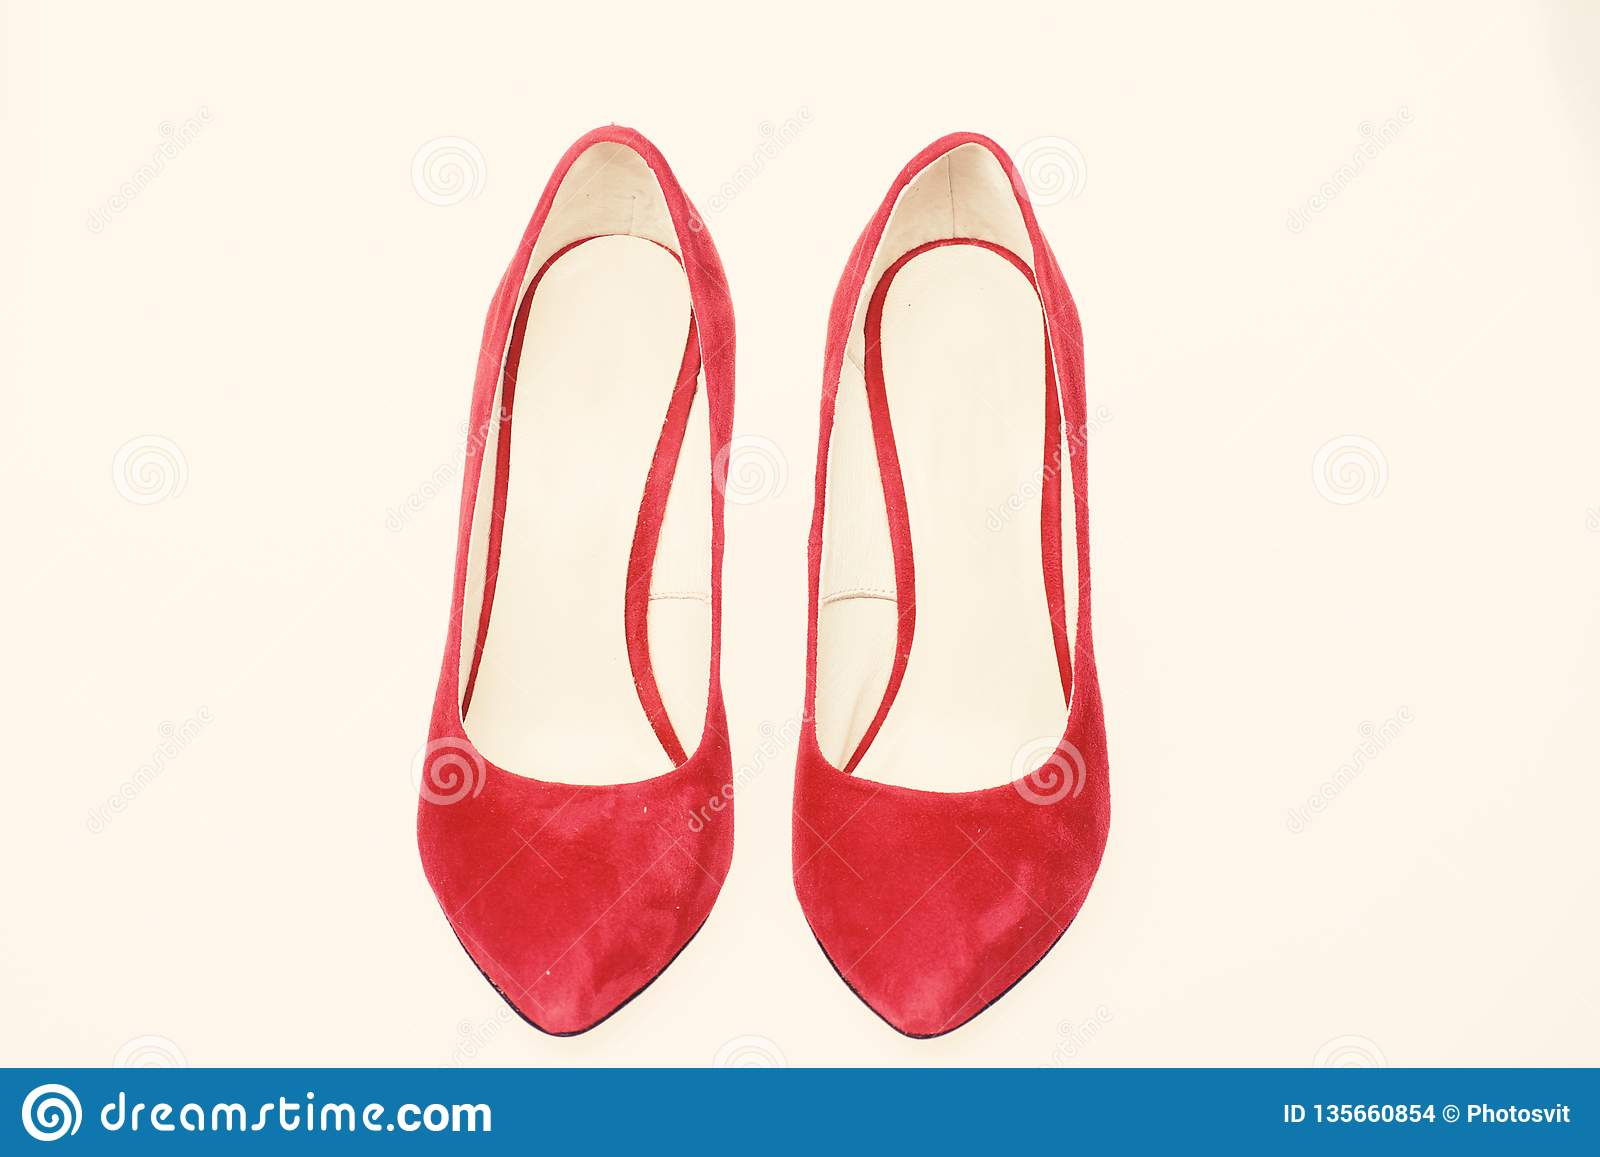 568d86bfa Pair of fashionable high heeled pump shoes.Elegant stiletto shoes concept.  Shoes made out of red suede on white background, isolated.